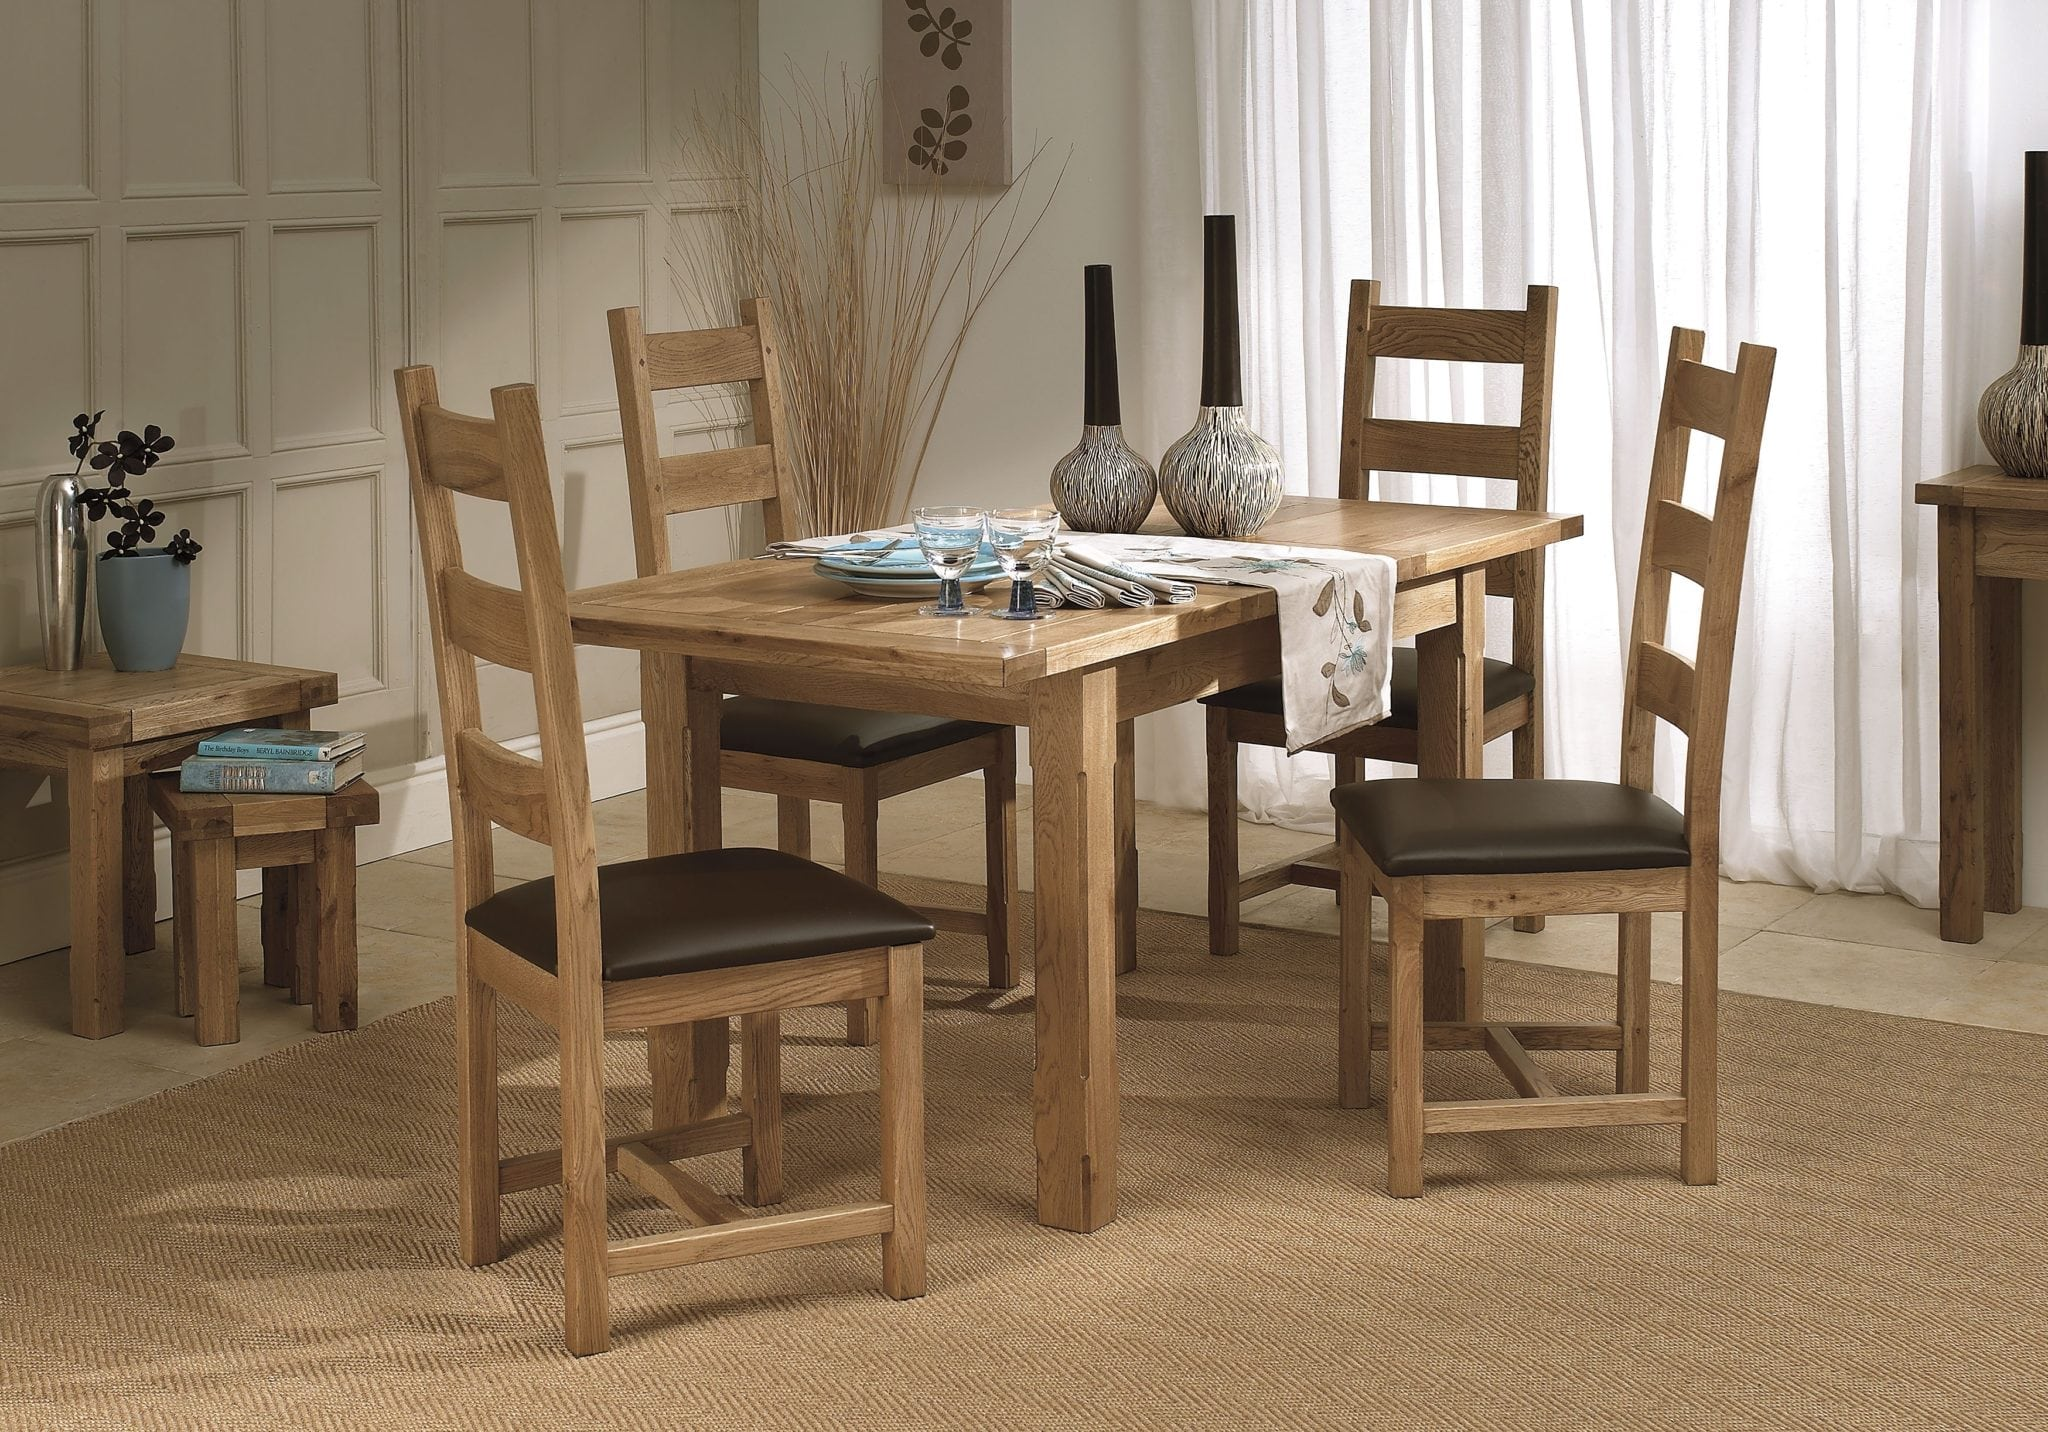 Wisteria Compact 122cm Extending Table 4 Chairs Portess